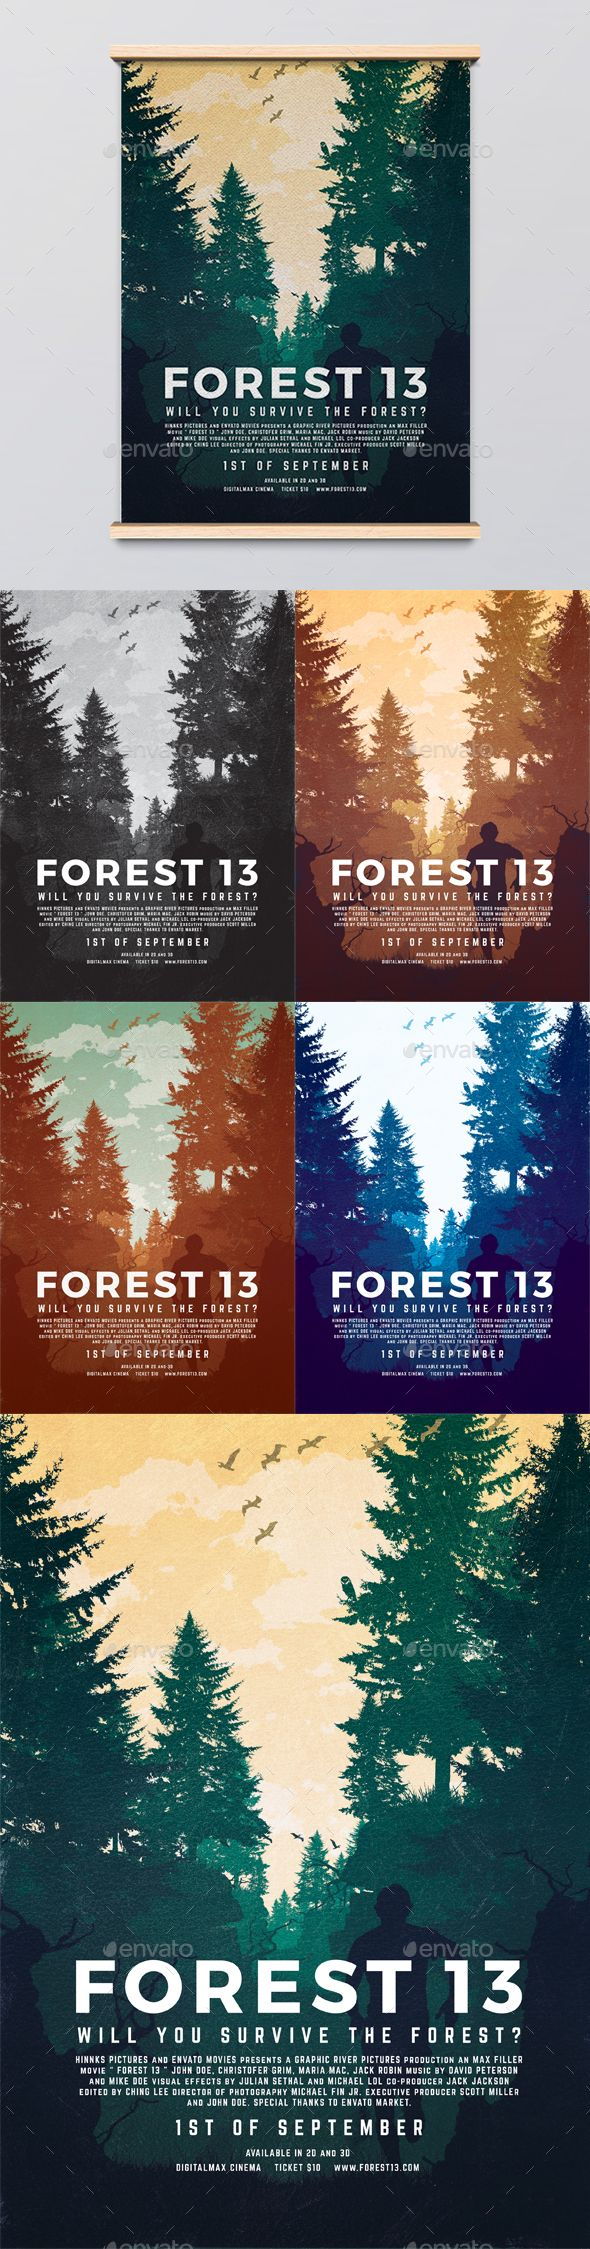 forest 13 movie poster template psd download here https